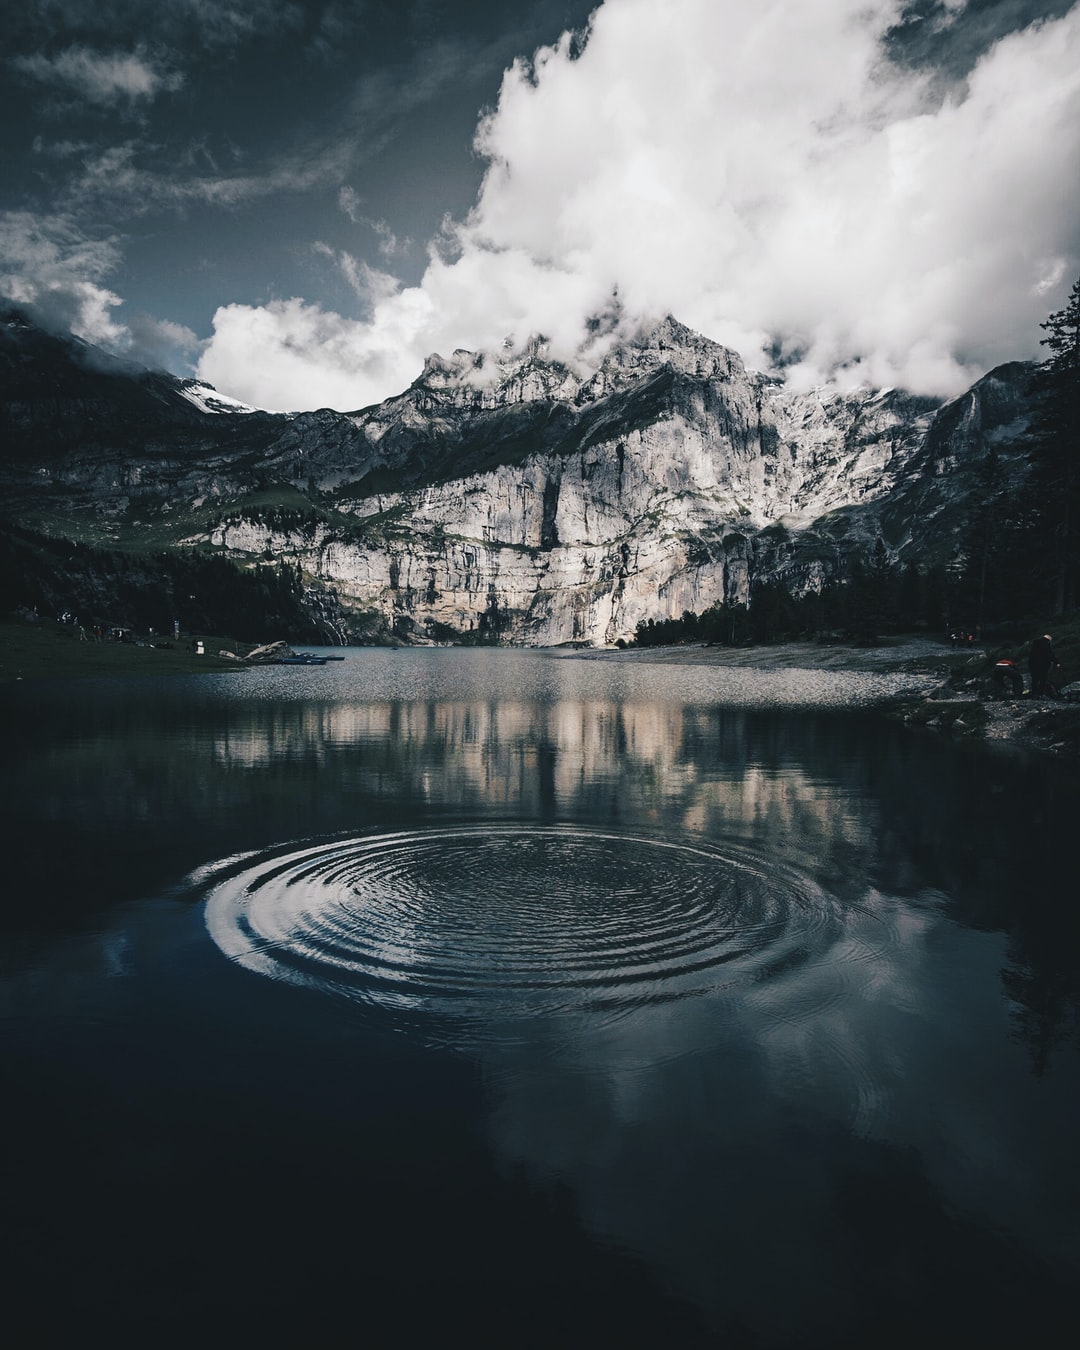 Mountain Water Drop